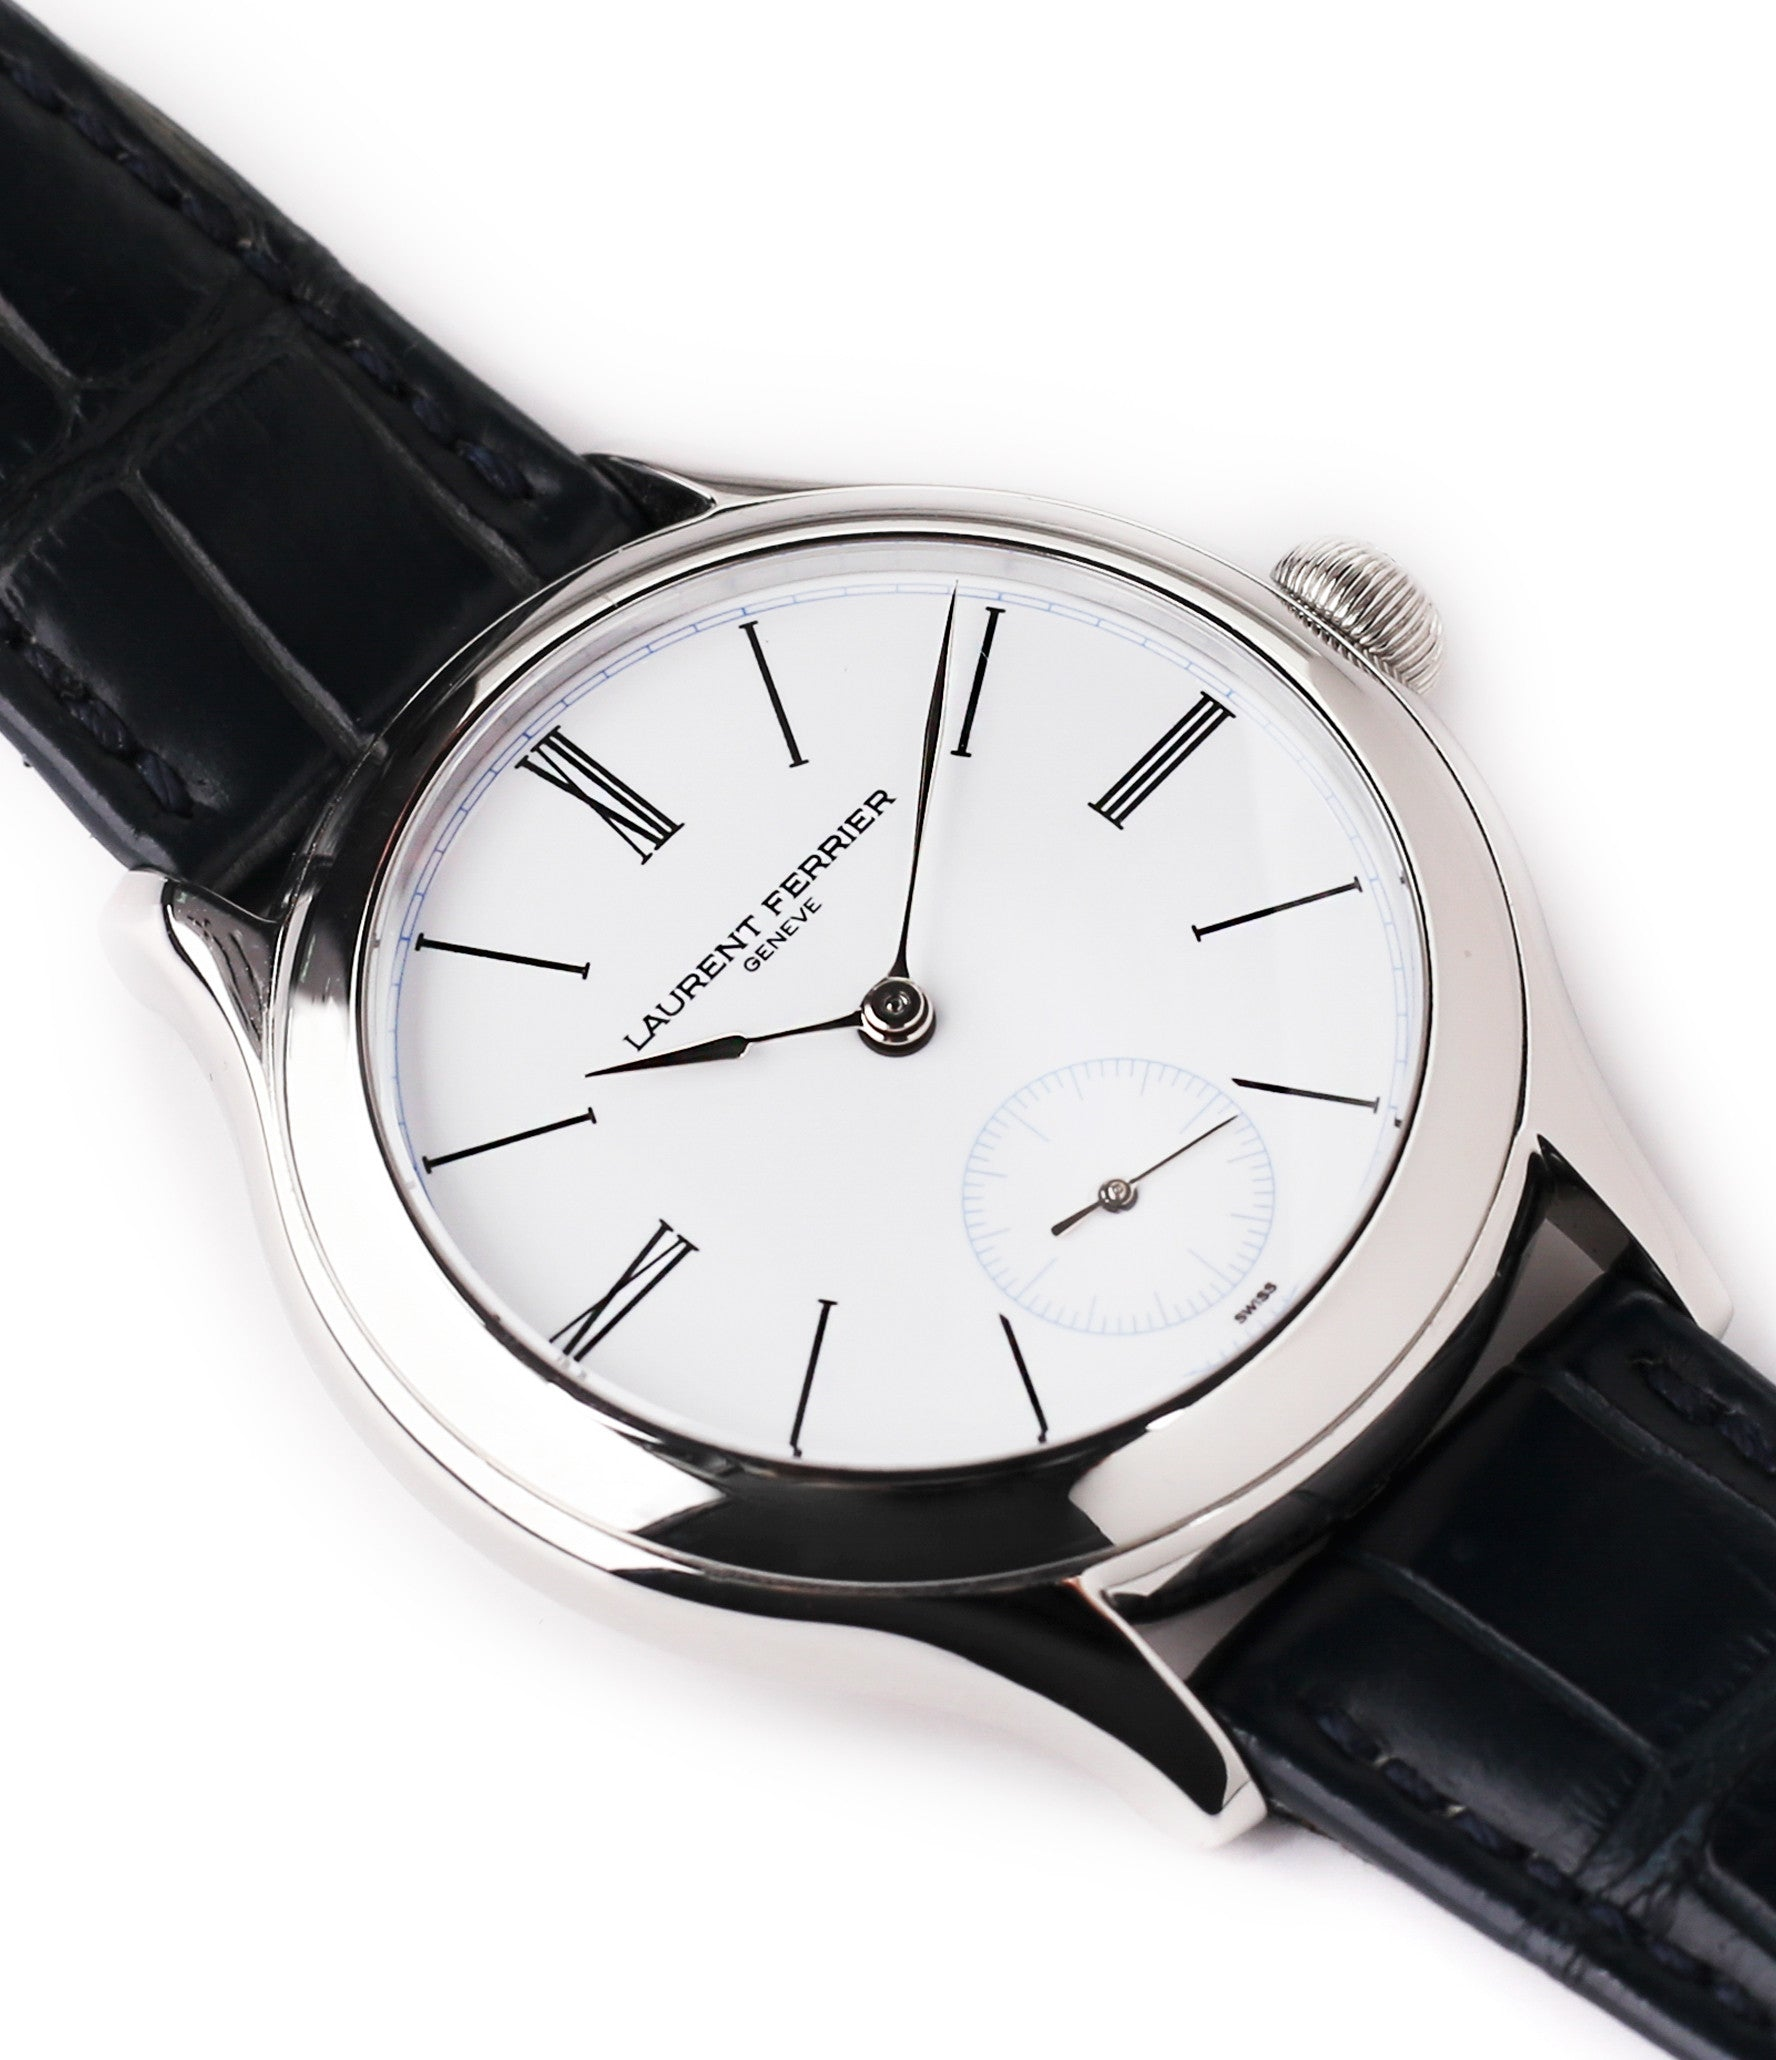 selling Laurent Ferrier Galet Micro-rotor LCF006 platinum enamel dial limited edition watch for sale online at A Collected Man London specialist independent watchmakers